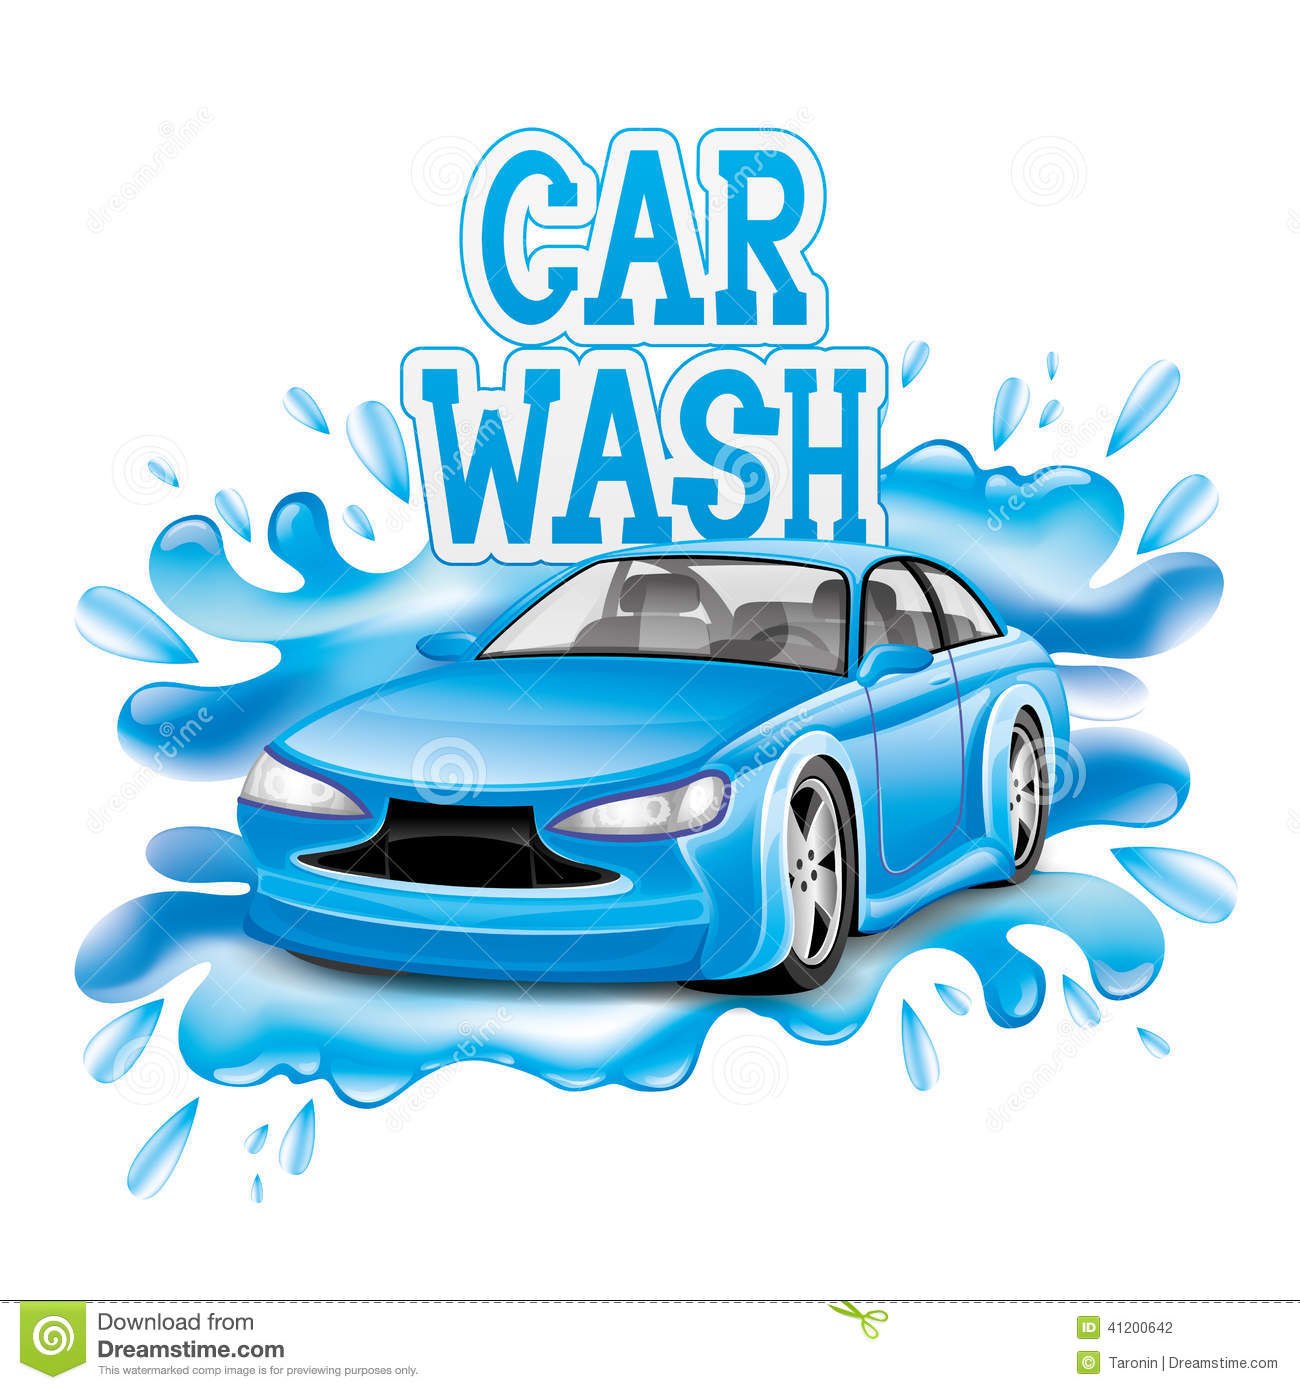 car wash stock vector illustration of blue design 41200642 rh dreamstime com car wash vector background car wash vector logo